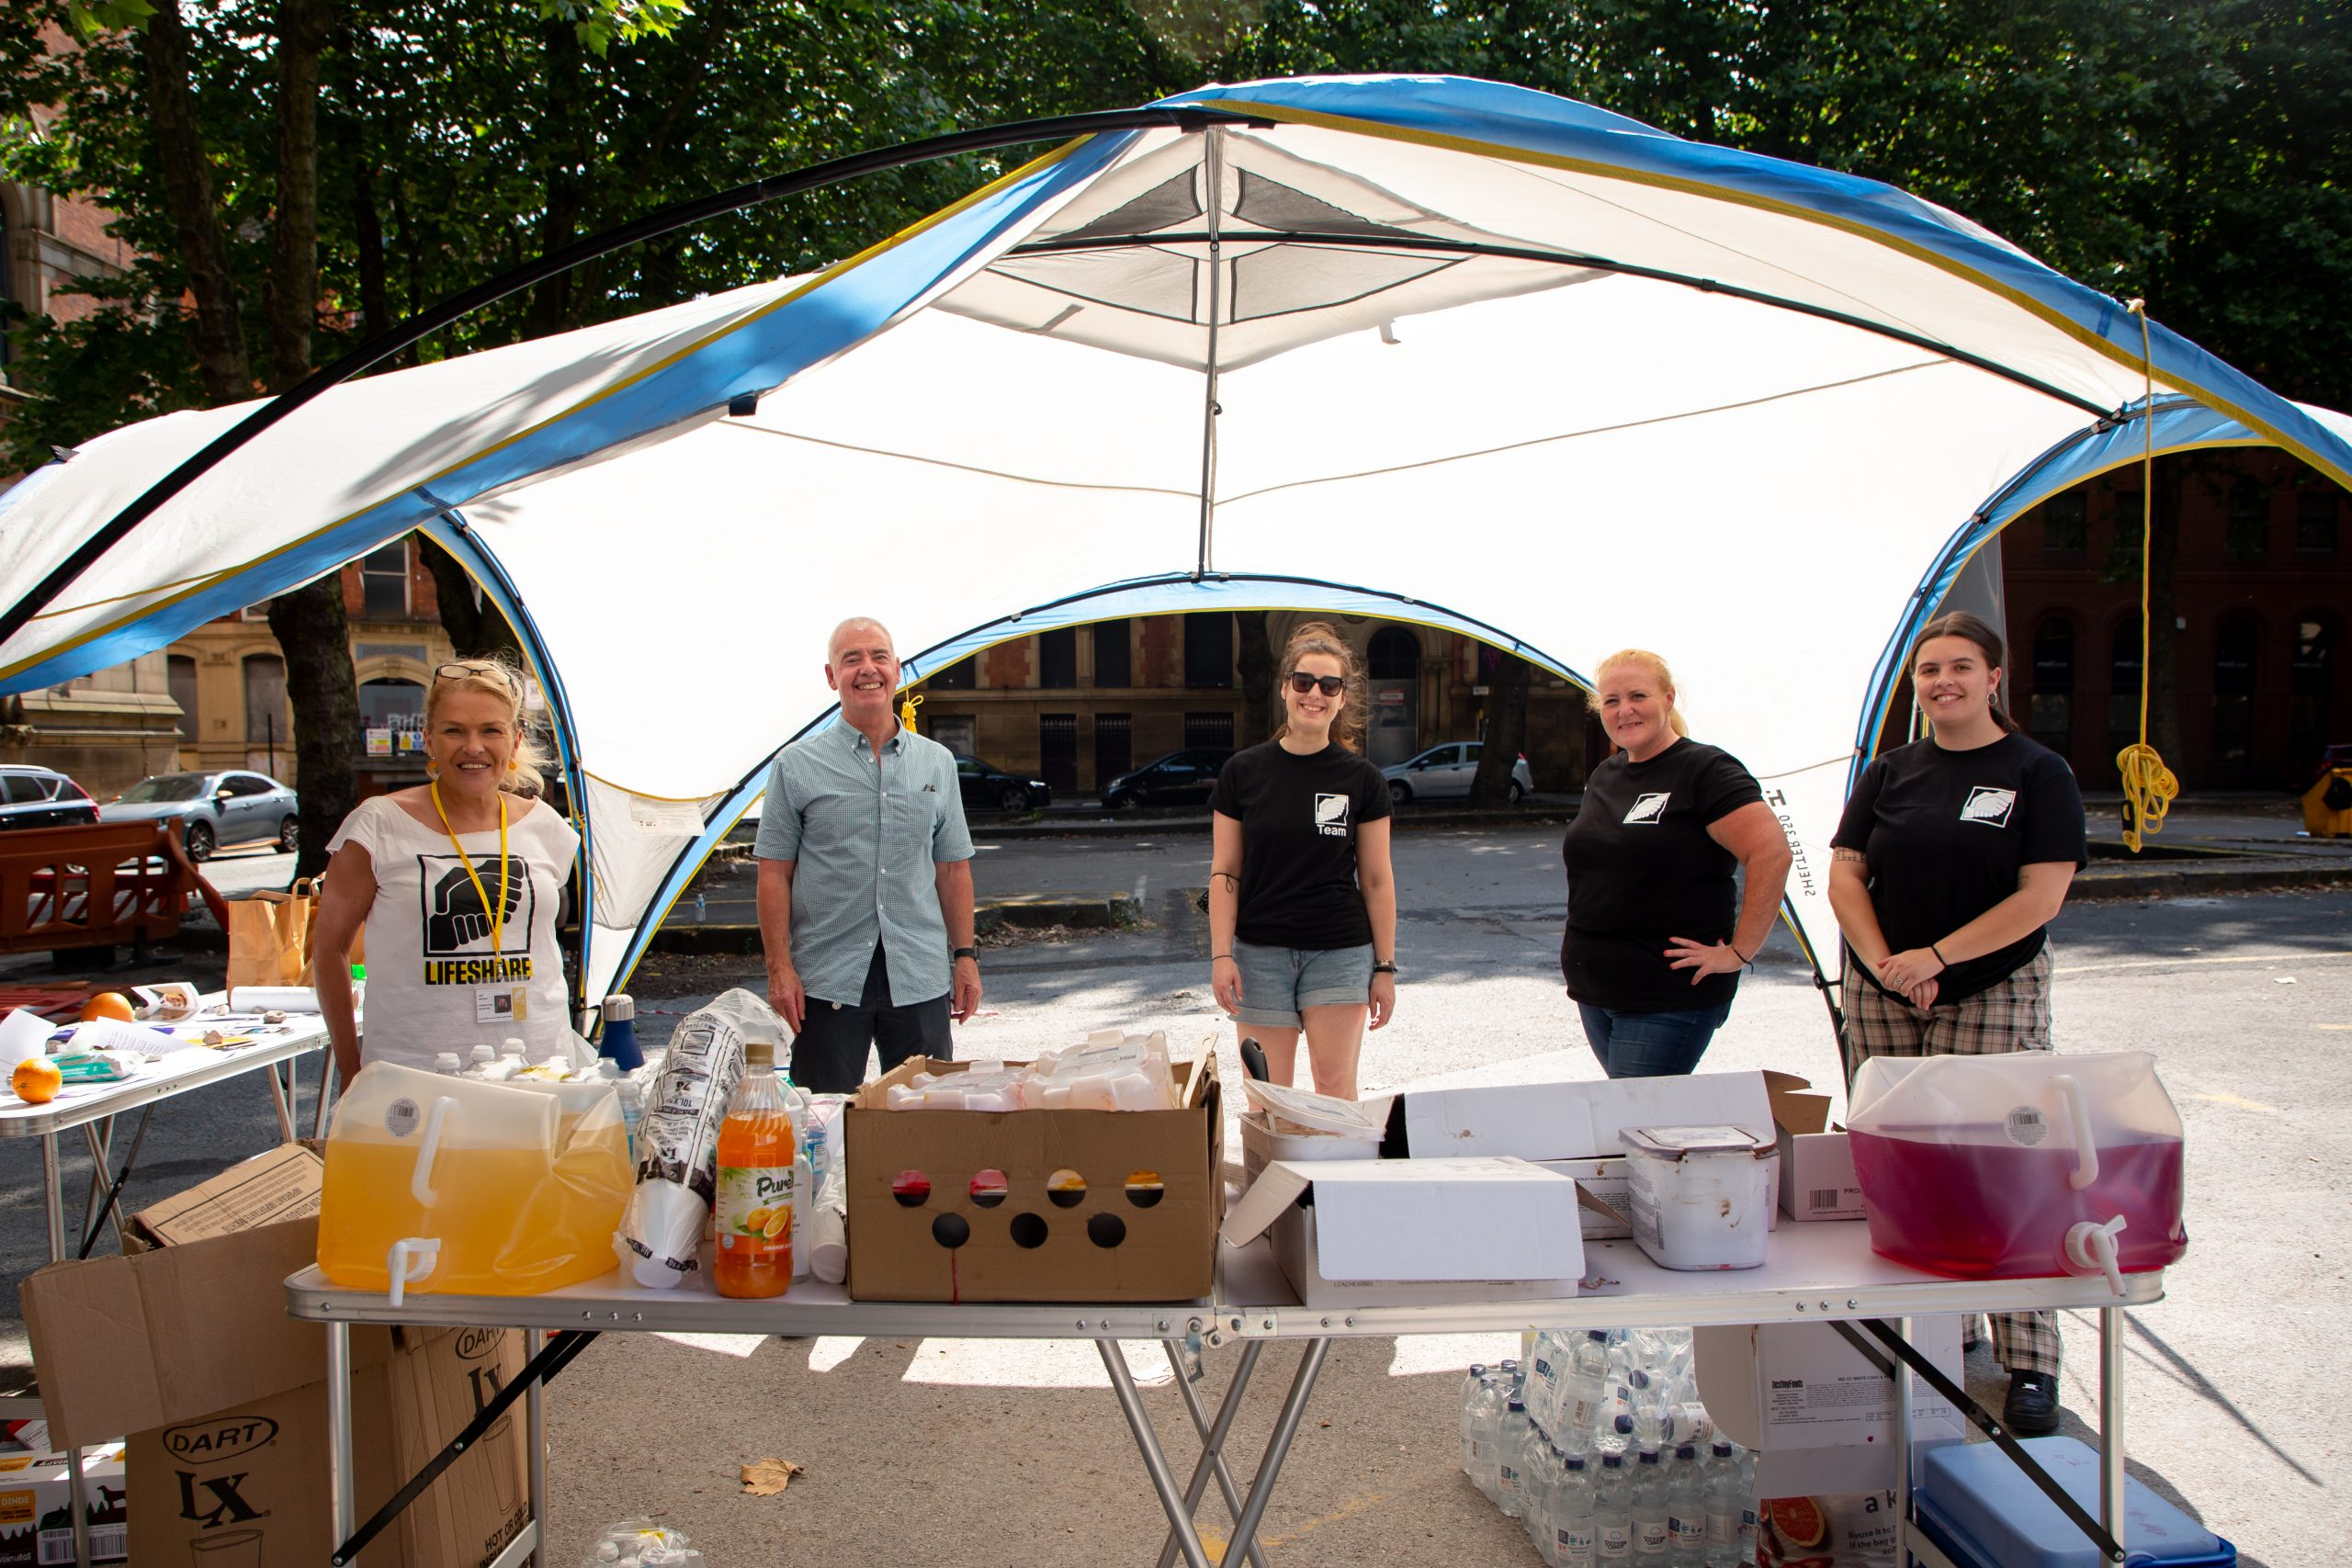 five lifeshare workers standing under a canopy